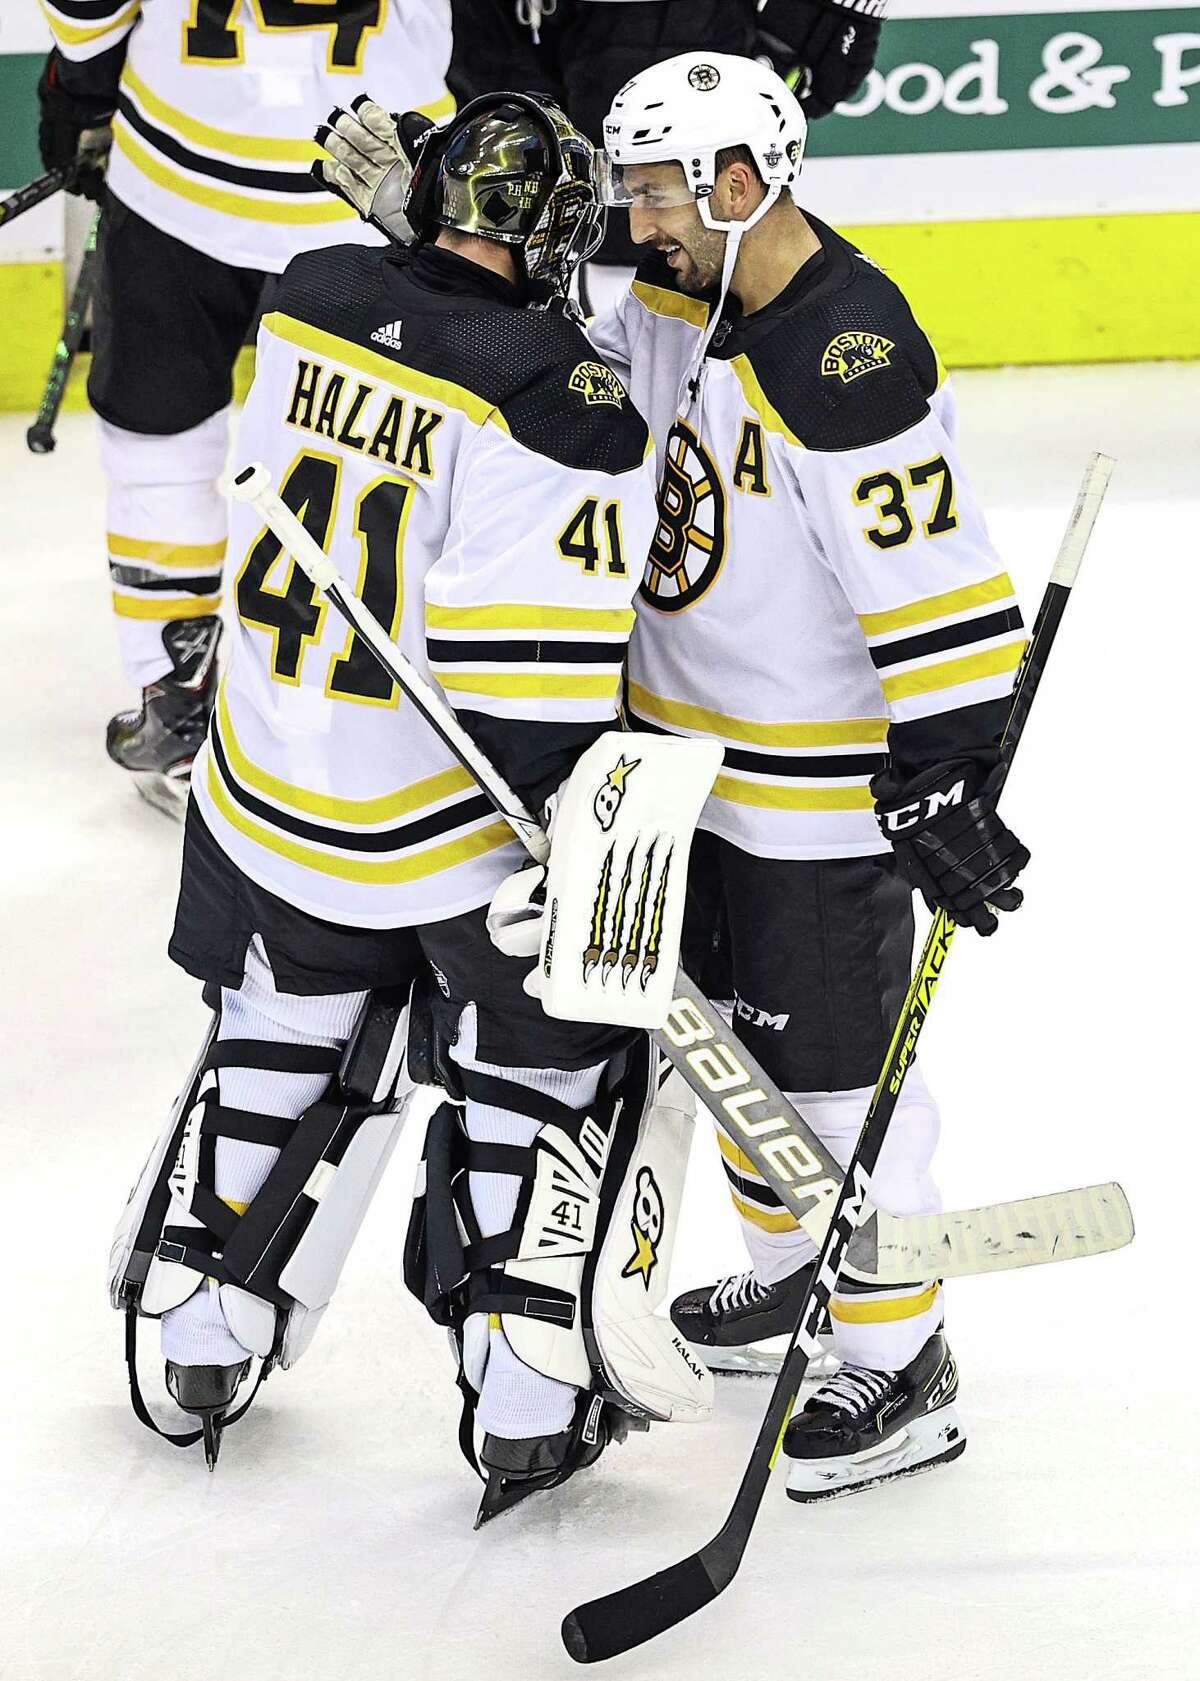 TORONTO, ONTARIO - AUGUST 15: Jaroslav Halak #41 and Patrice Bergeron #37 of the Boston Bruins celebrate their teams 3-1 win against the Carolina Hurricanes in Game Three of the Eastern Conference First Round during the 2020 NHL Stanley Cup Playoffs at Scotiabank Arena on August 15, 2020 in Toronto, Ontario. (Photo by Elsa/Getty Images)